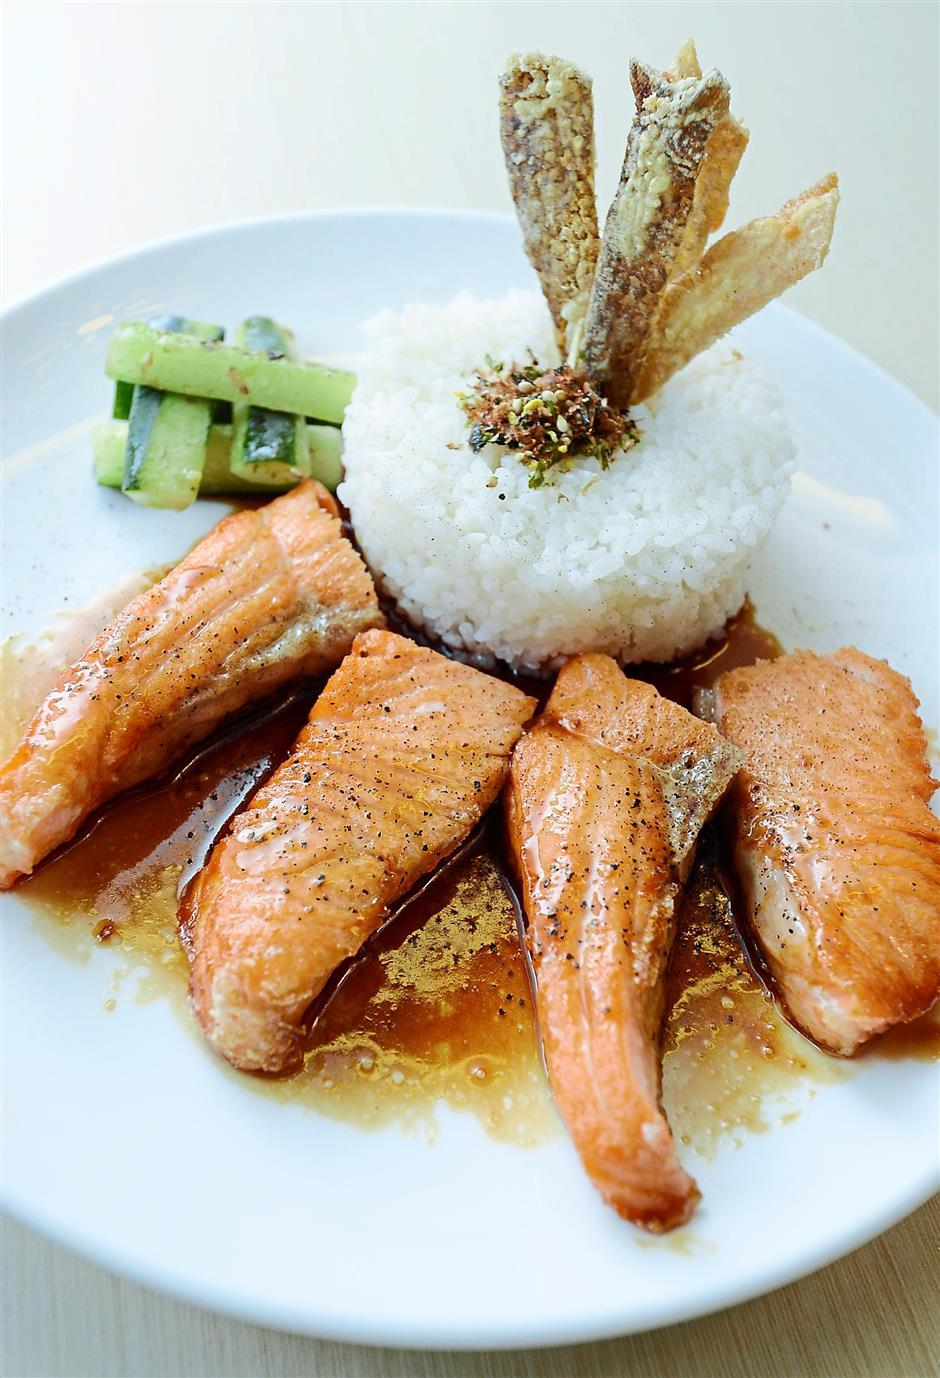 Fresh and tasty: The Salmon Teriyaki is prepared with just the right amount of flavour.